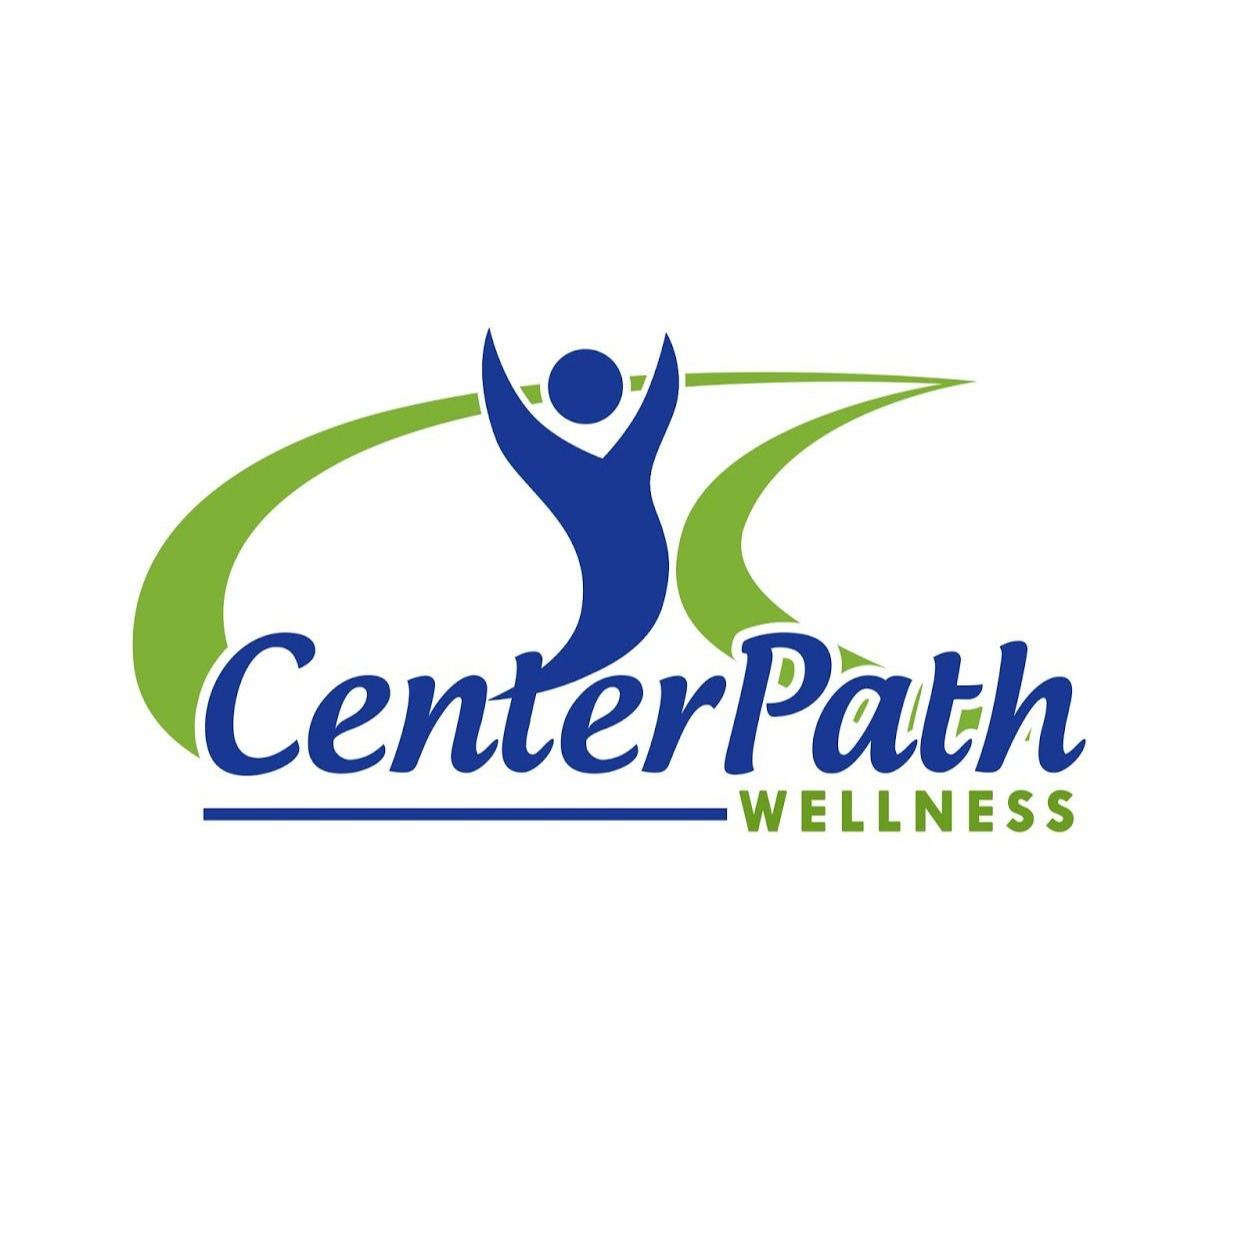 Centerpath Wellness